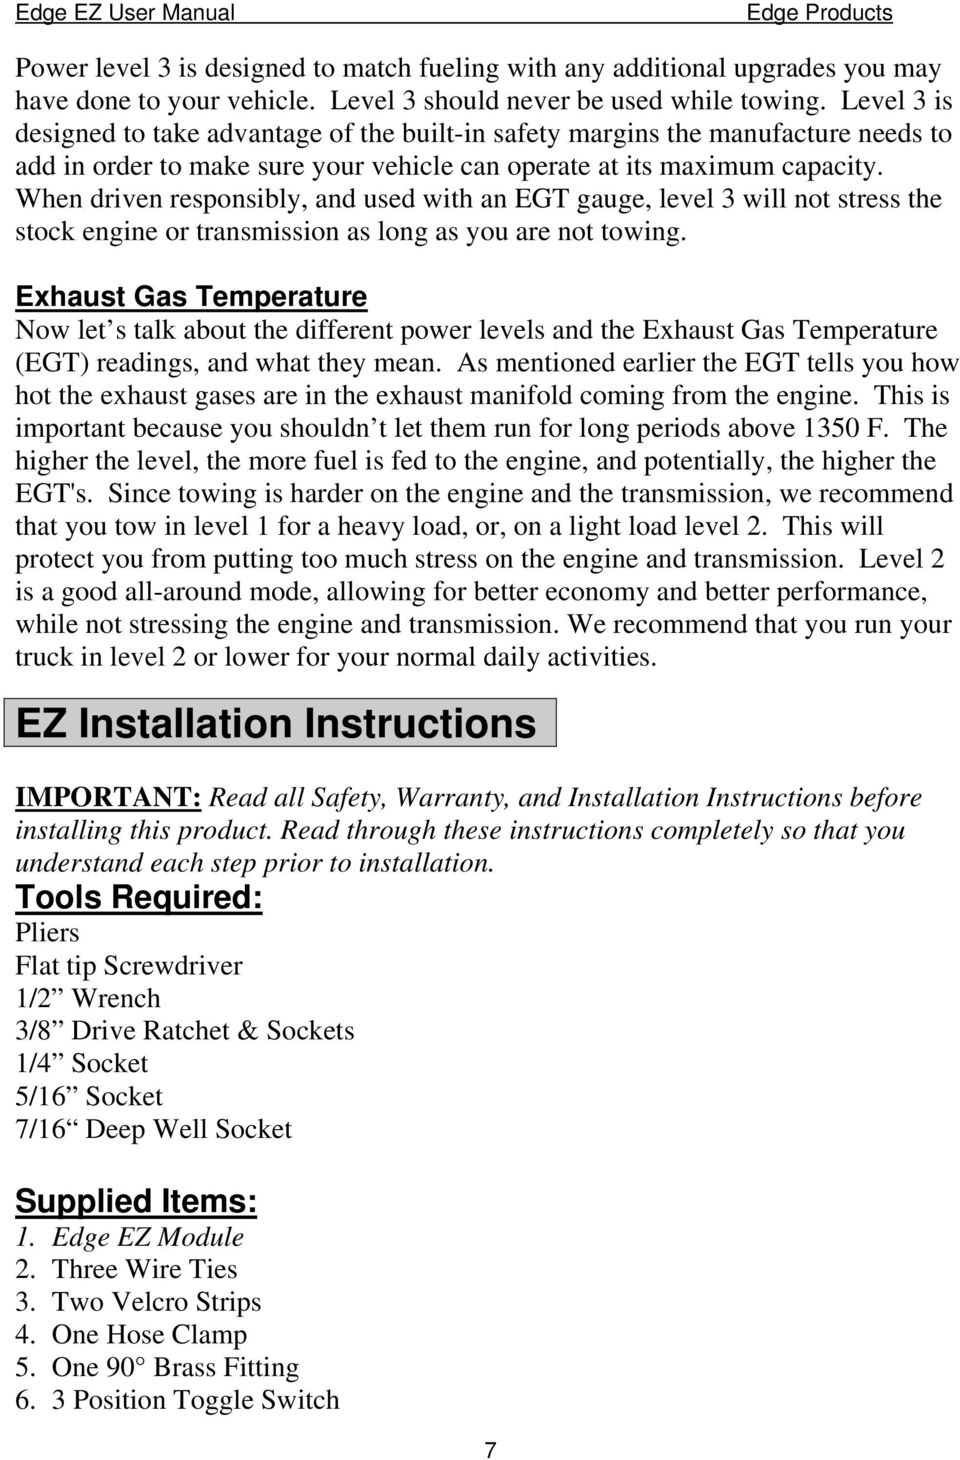 Dodge Cummins 59l 24 Valve Edge Products Ez Module Installation Wiring Diagram When Driven Responsibly And Used With An Egt Gauge Level 3 Will Not Stress 8 The